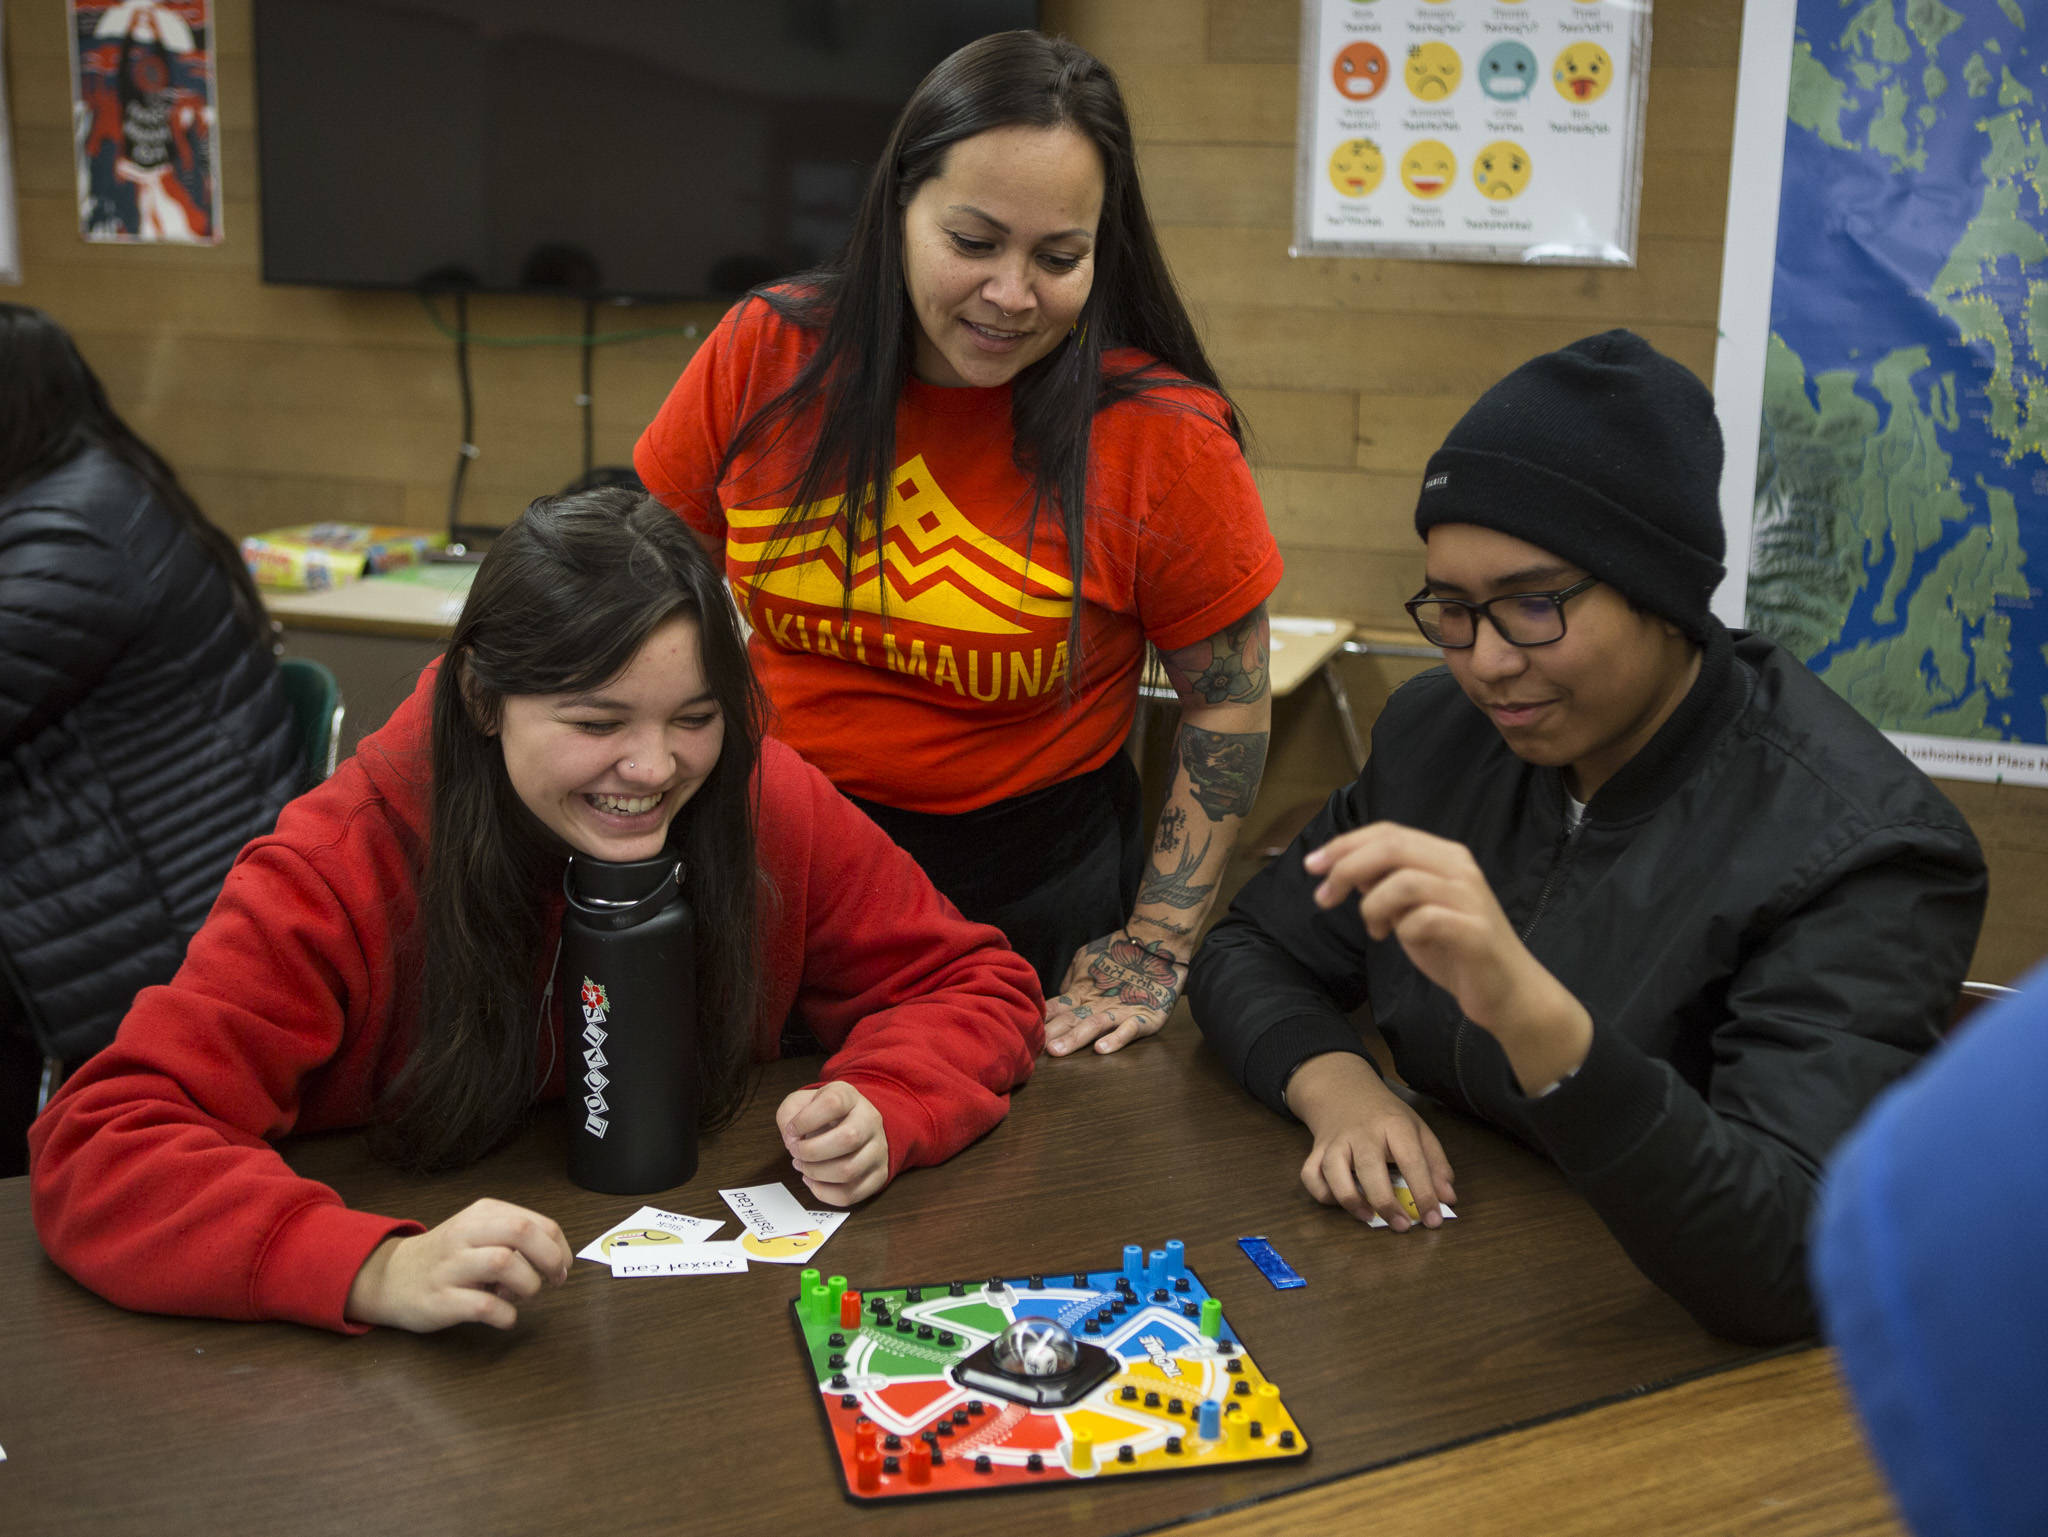 Natosha Gobin, center, watches as her students Angel Cortez, left, and Randy Vendiola, right, play a word matching game during Lushootseed class at Marysville Pilchuck High School on Nov. 1. (Olivia Vanni / The Herald)